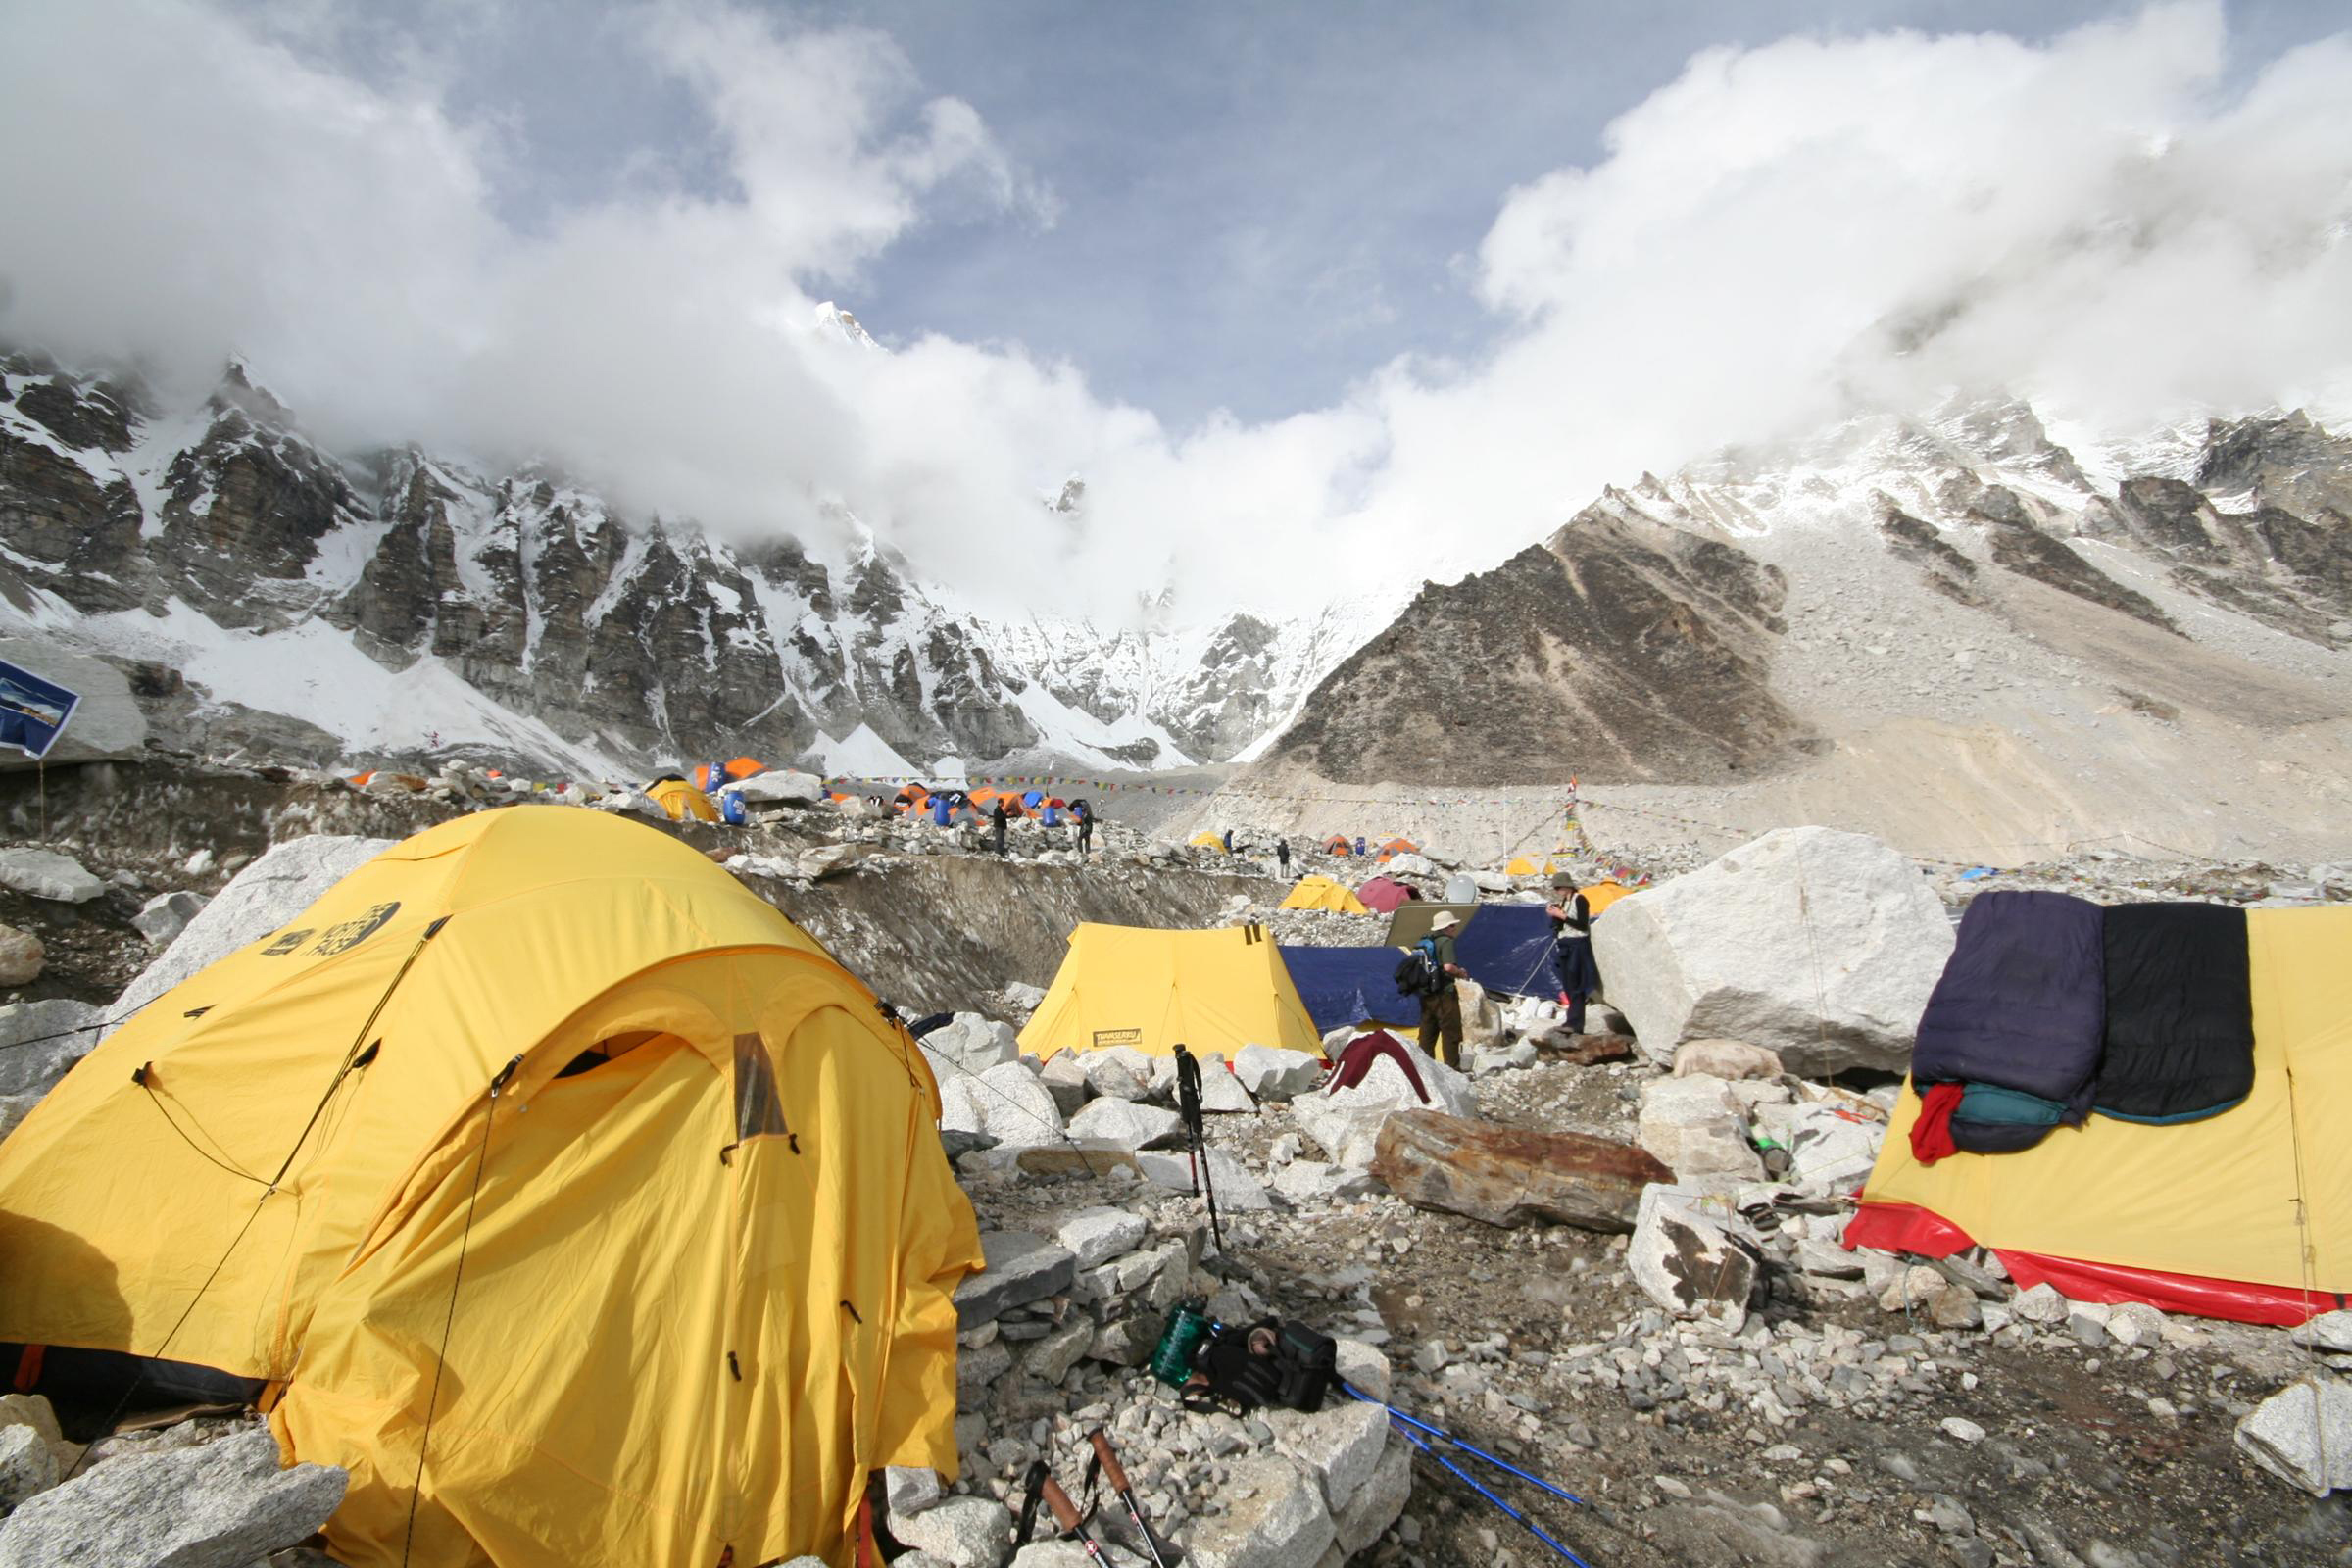 everest basecamp tents